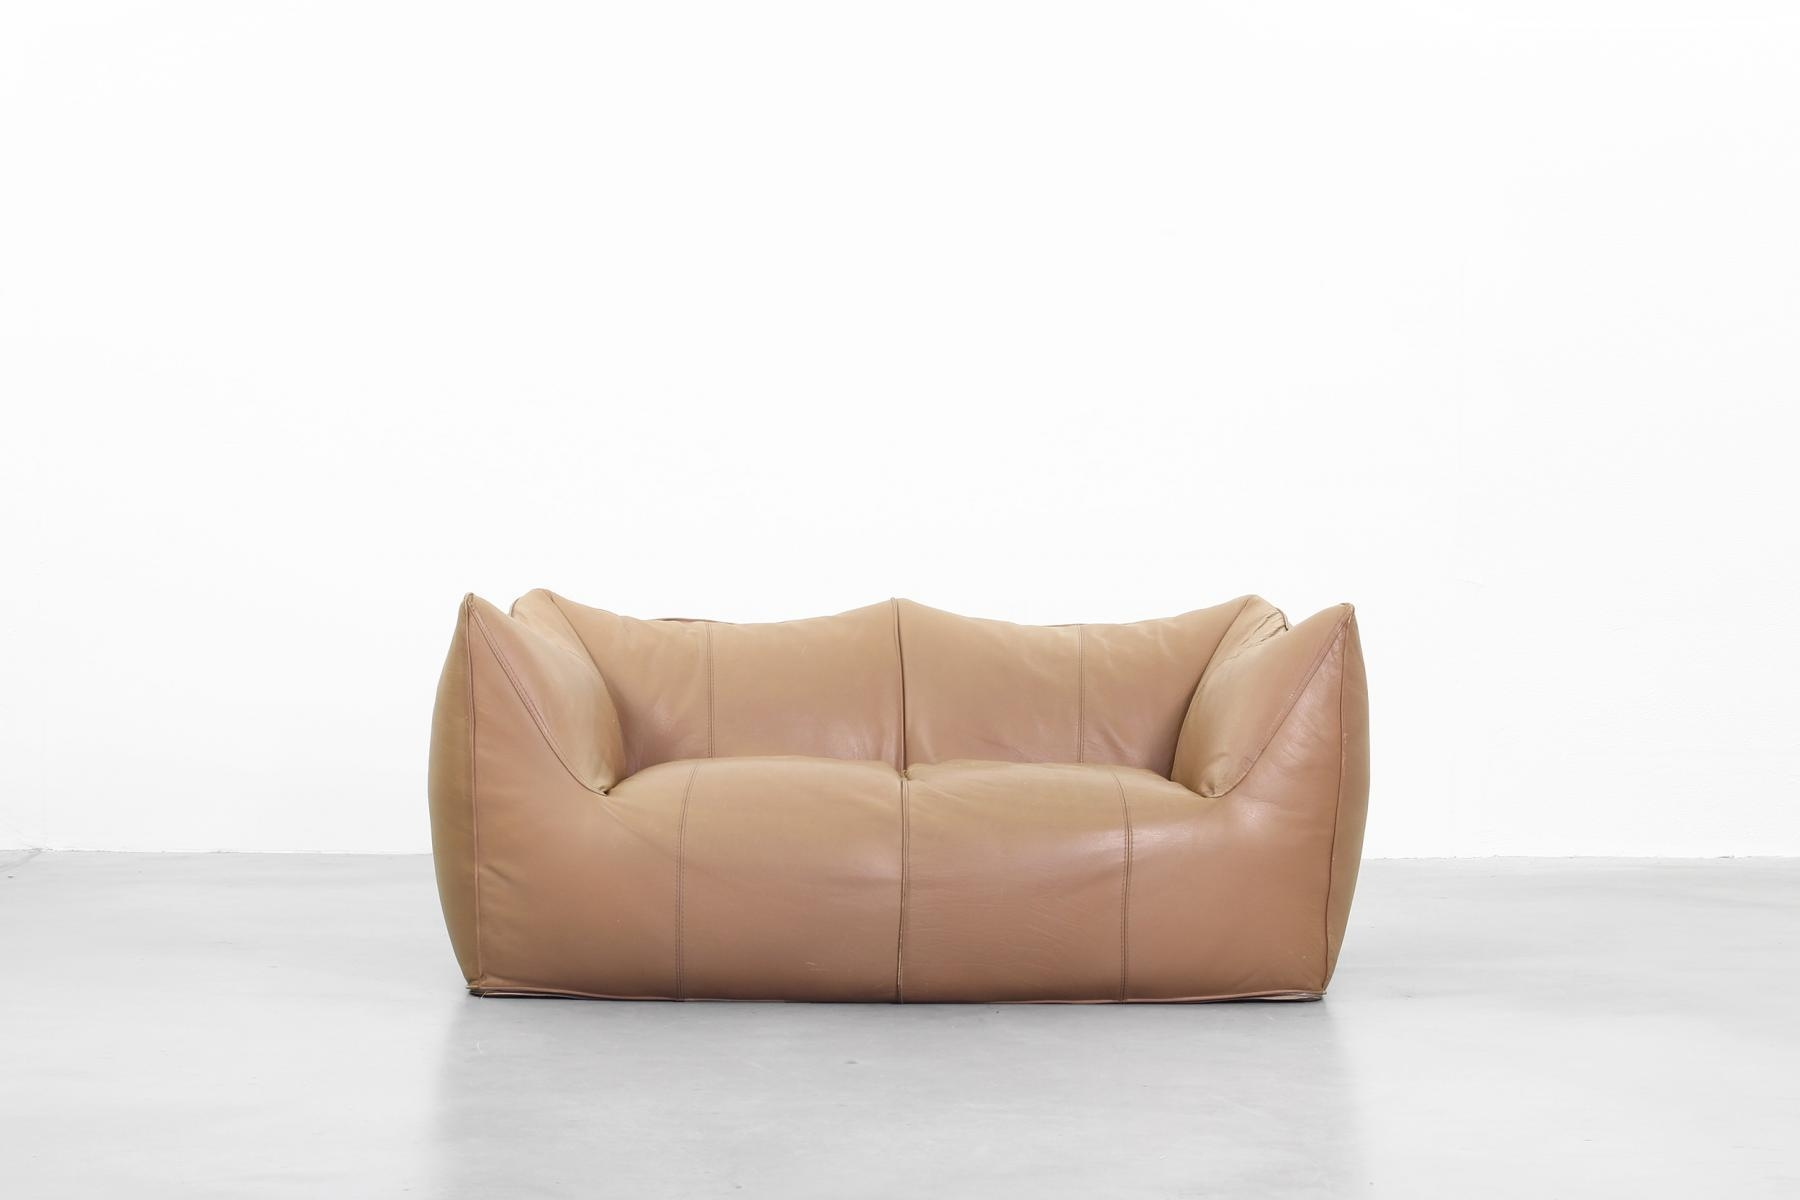 Bambole Sofamario Bellini For B&b Italia, 1970S For Sale At Pamono Intended For Bellini Couches (View 7 of 20)